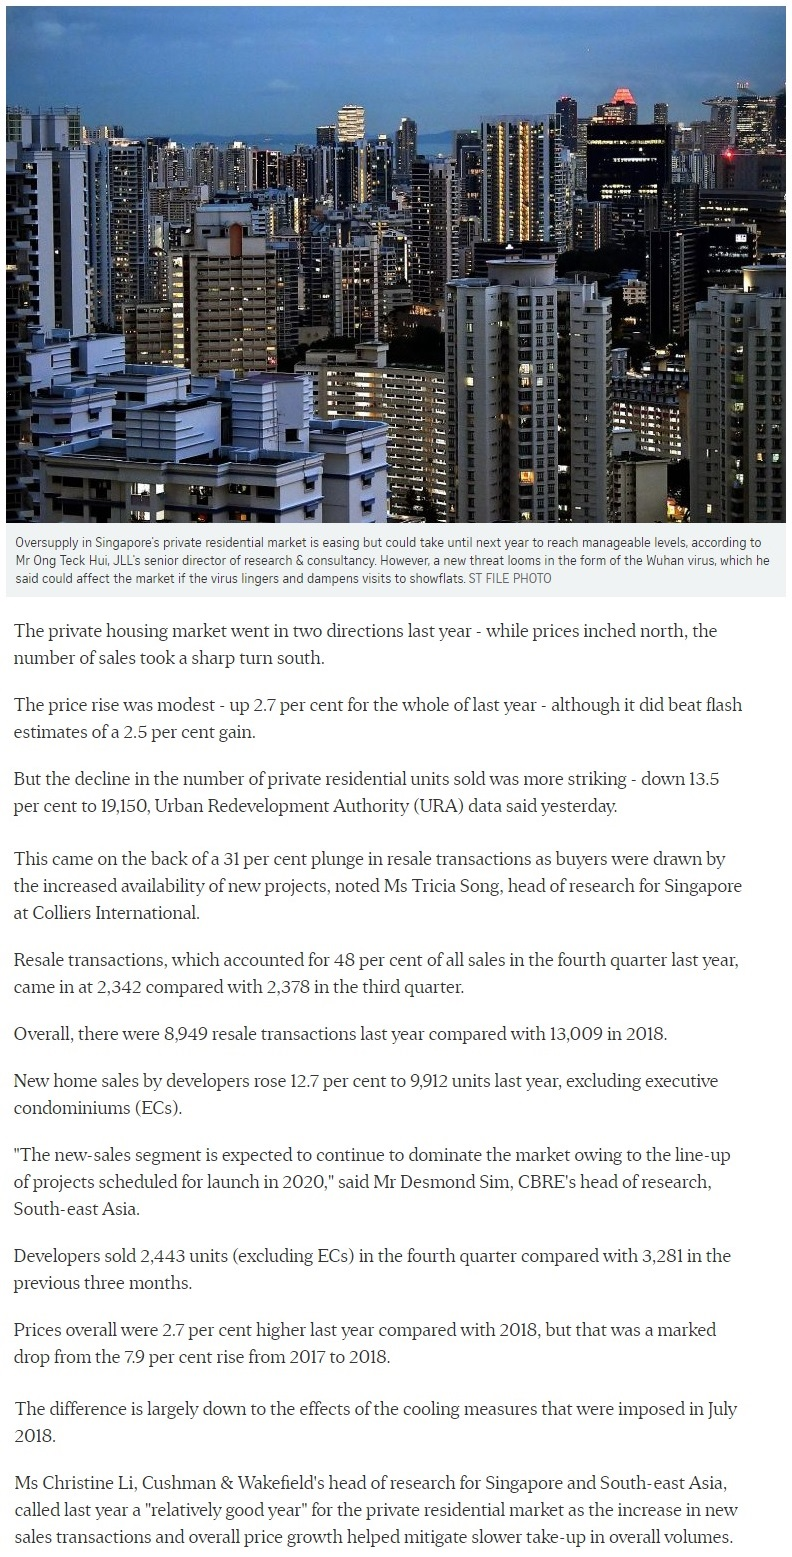 Marina One Residences - Singapore private home prices inch up 2.7% for 2019 Part 1